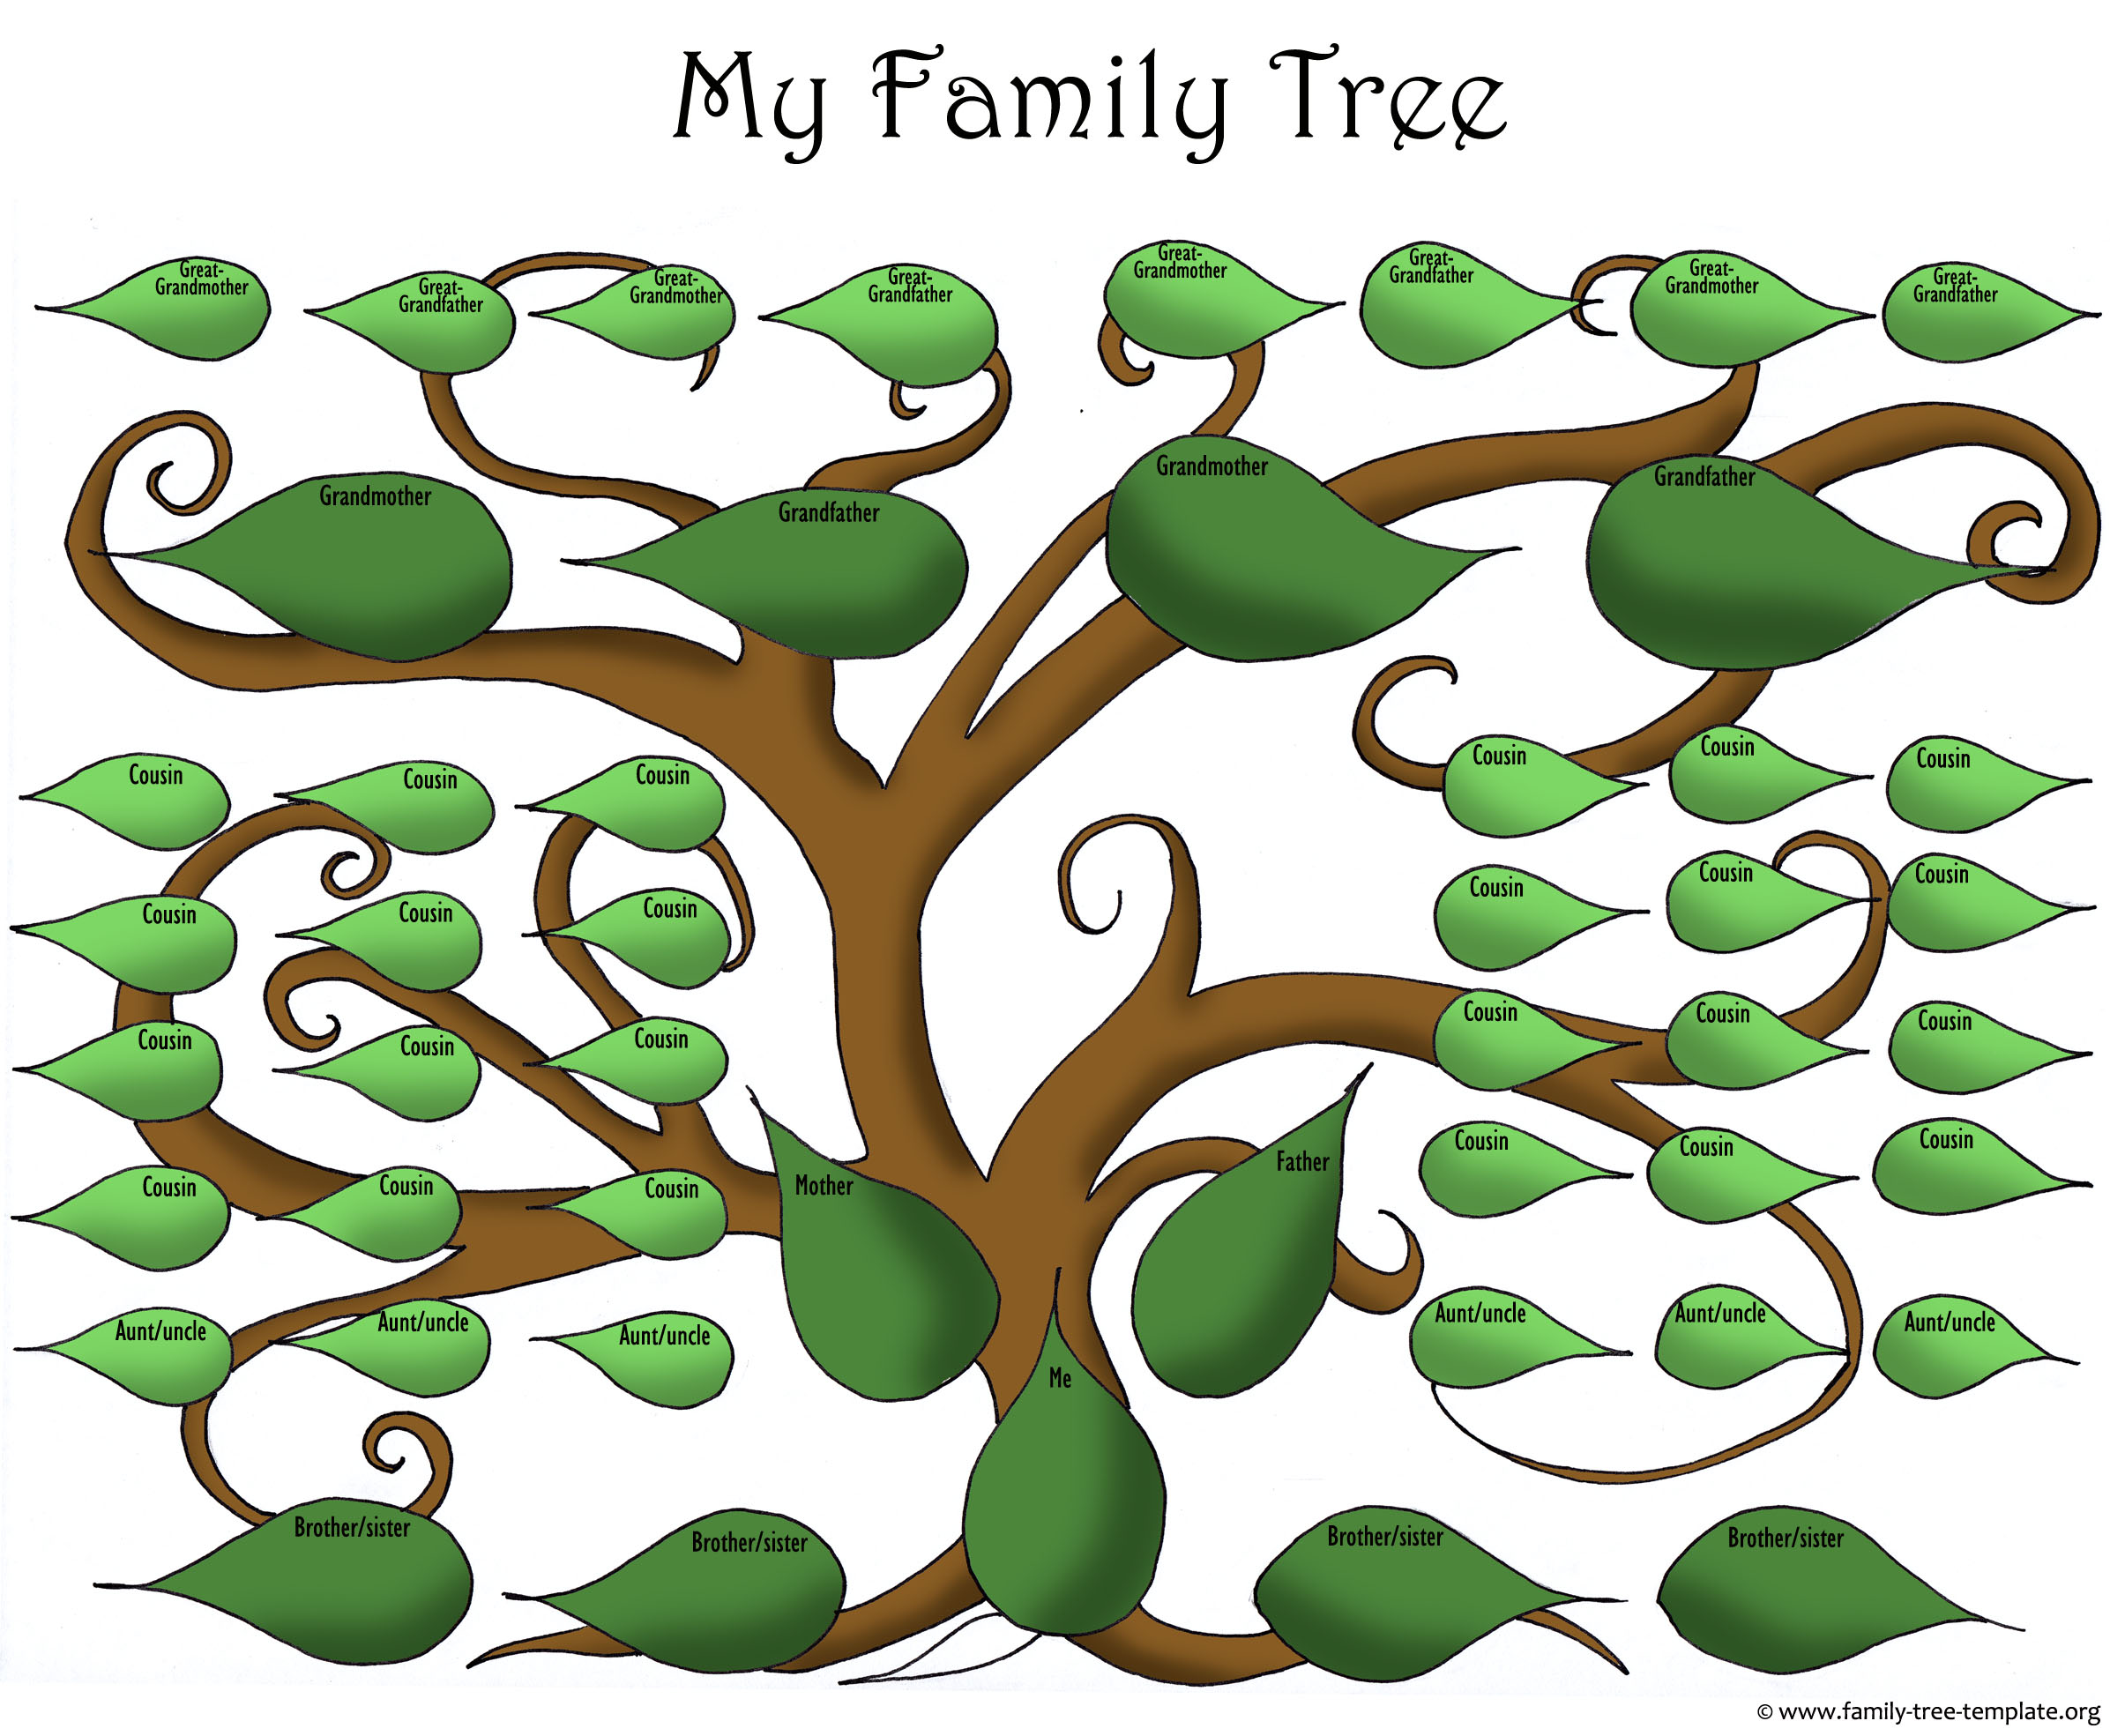 ... printable family tree template for the big family with lots of kids